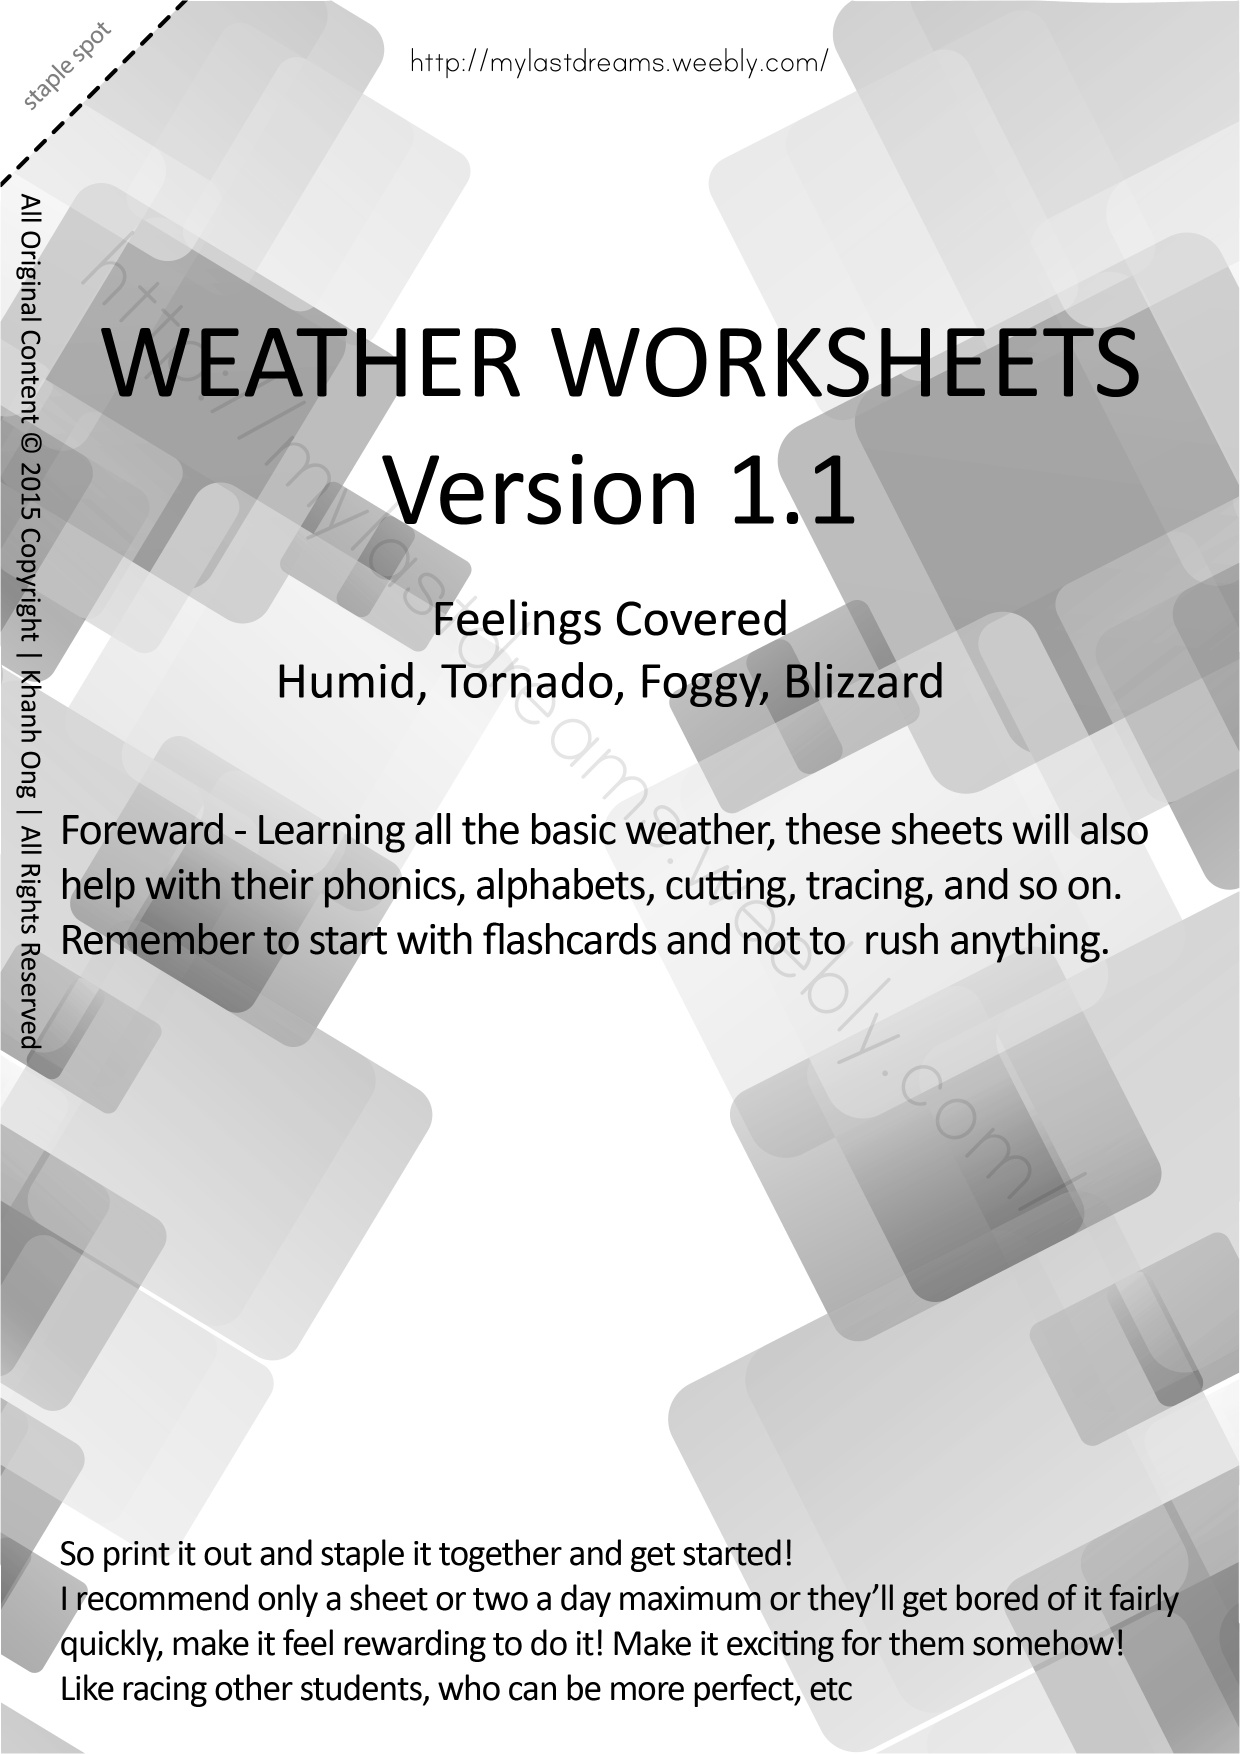 MLD - Basic Weather Worksheets - Part 3 - A4 Sized